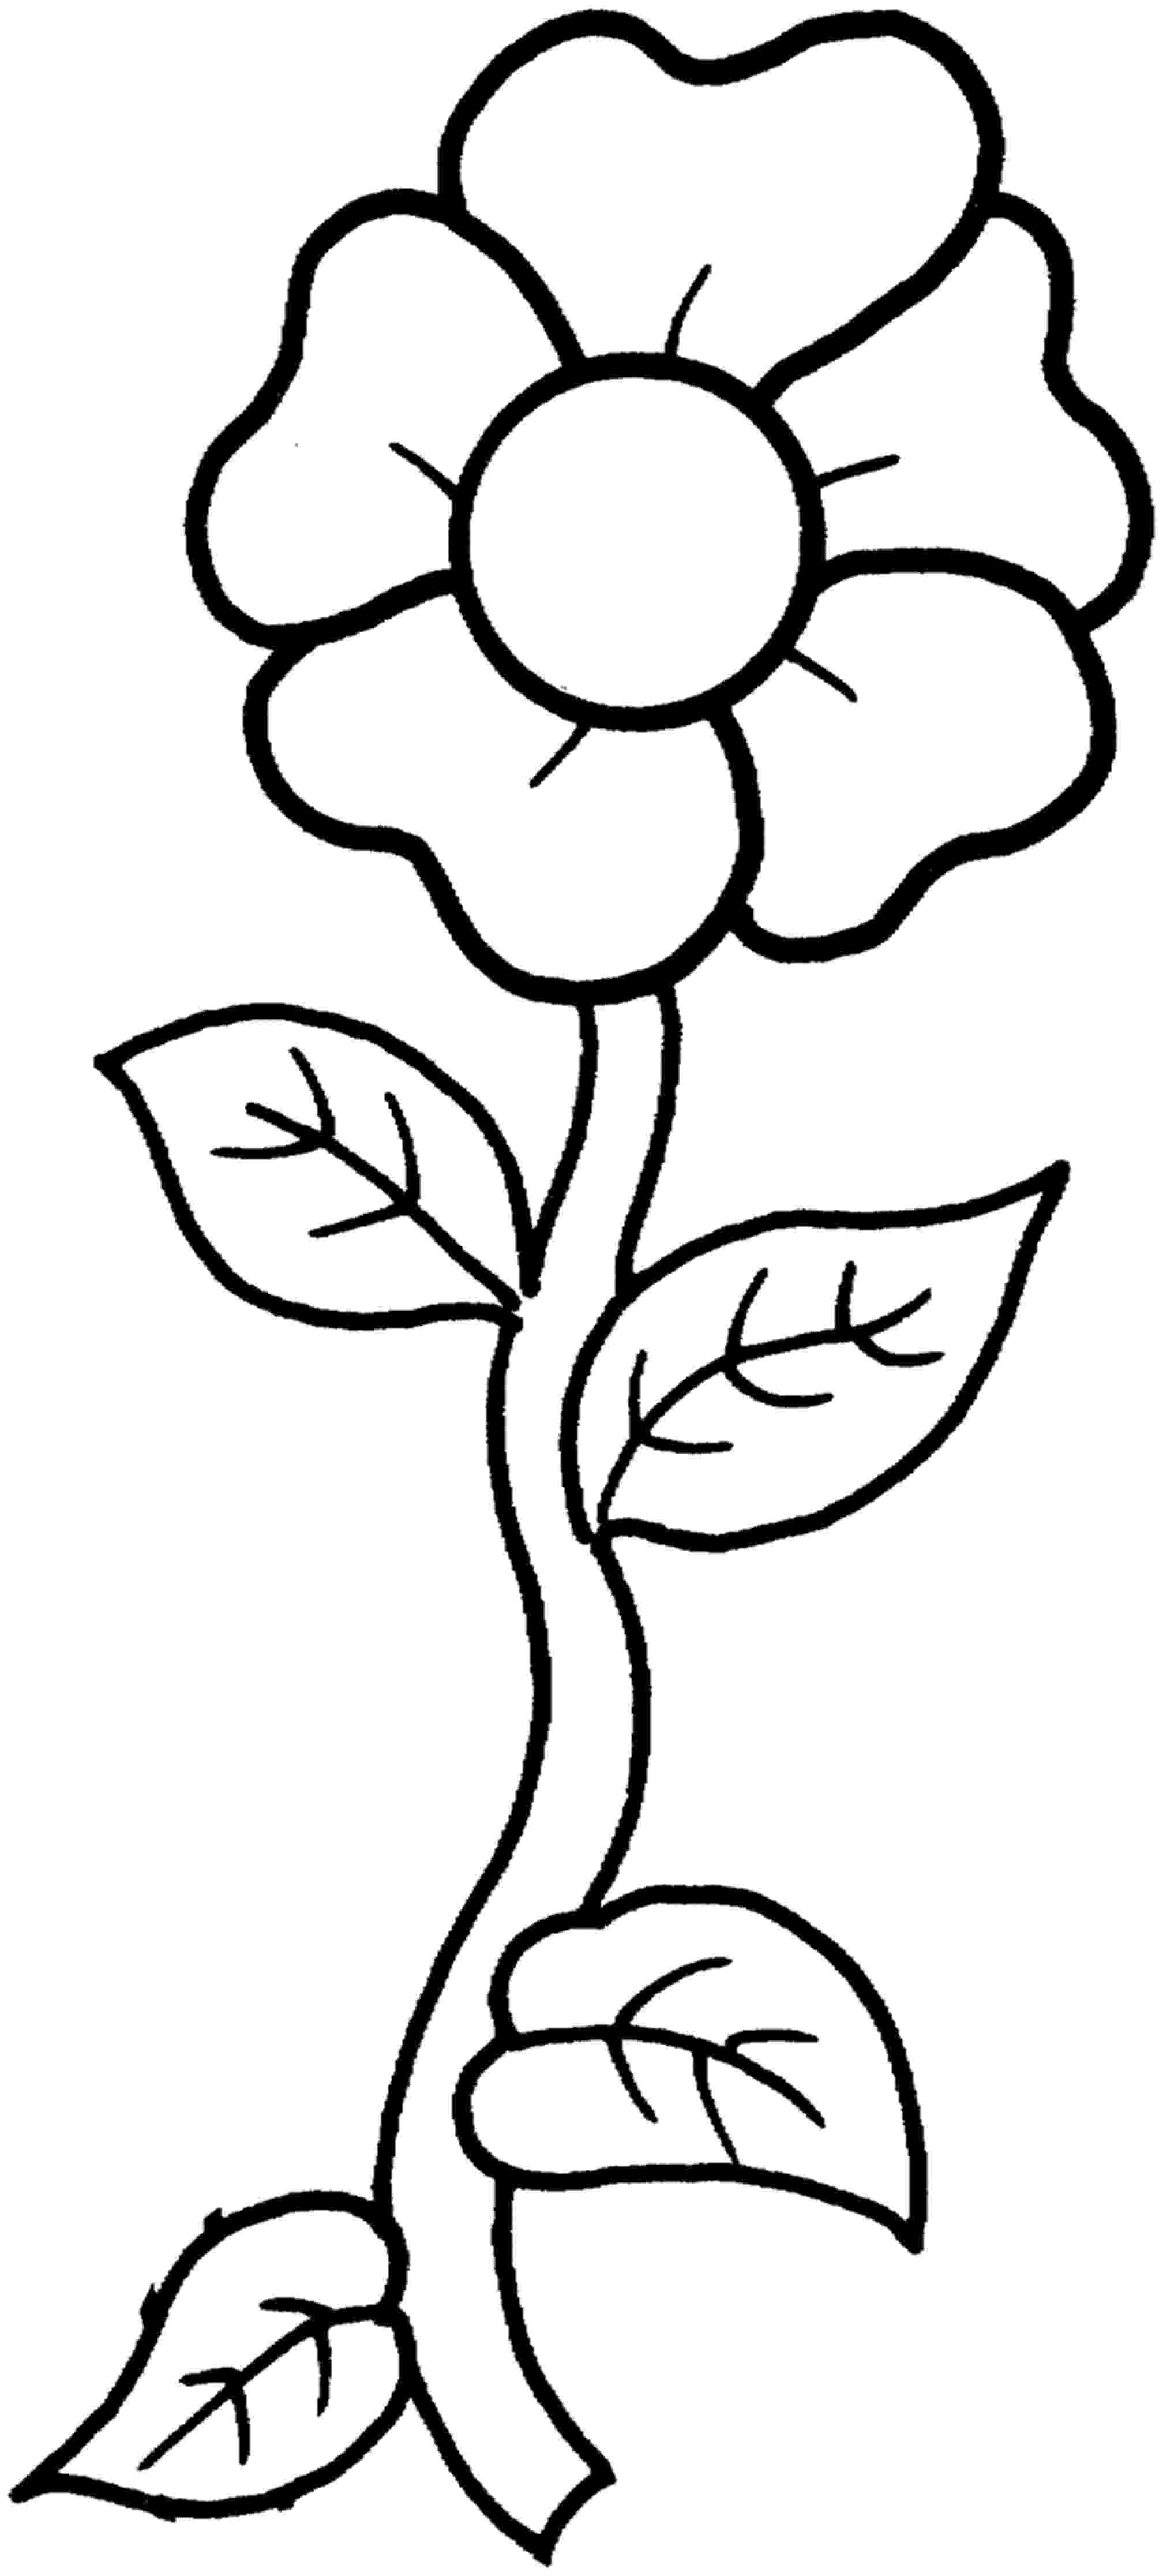 flowers color pages free printable flower coloring pages for kids best flowers color pages 1 2